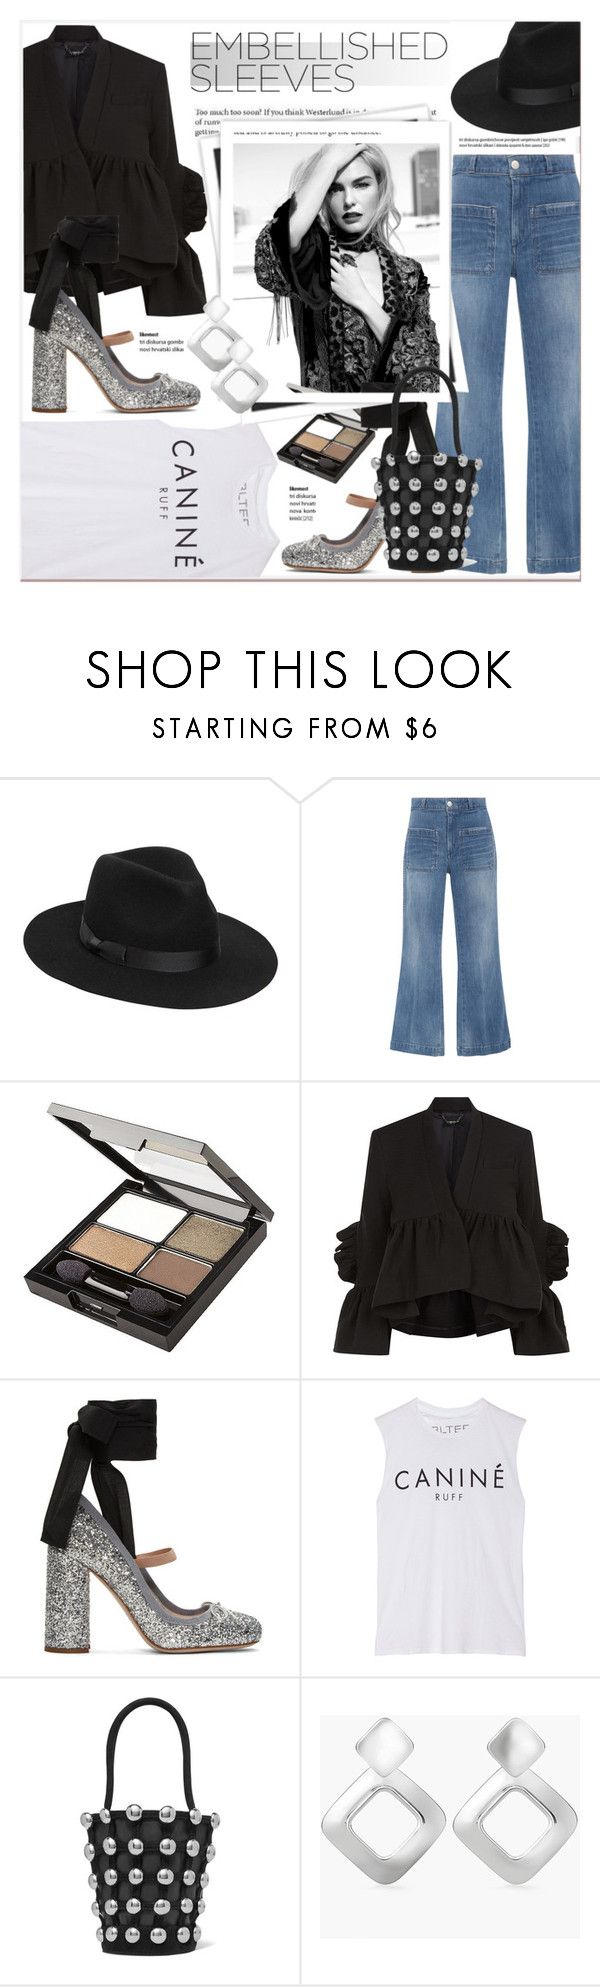 """""""#embellishedsleeves"""" by stylemeup-649 ❤ liked on Polyvore featuring Lack of Color, AMO, Ÿù, Revlon, Rachel Comey, Miu Miu, Brian Lichtenberg, GALA, Alexander Wang and Chico's"""